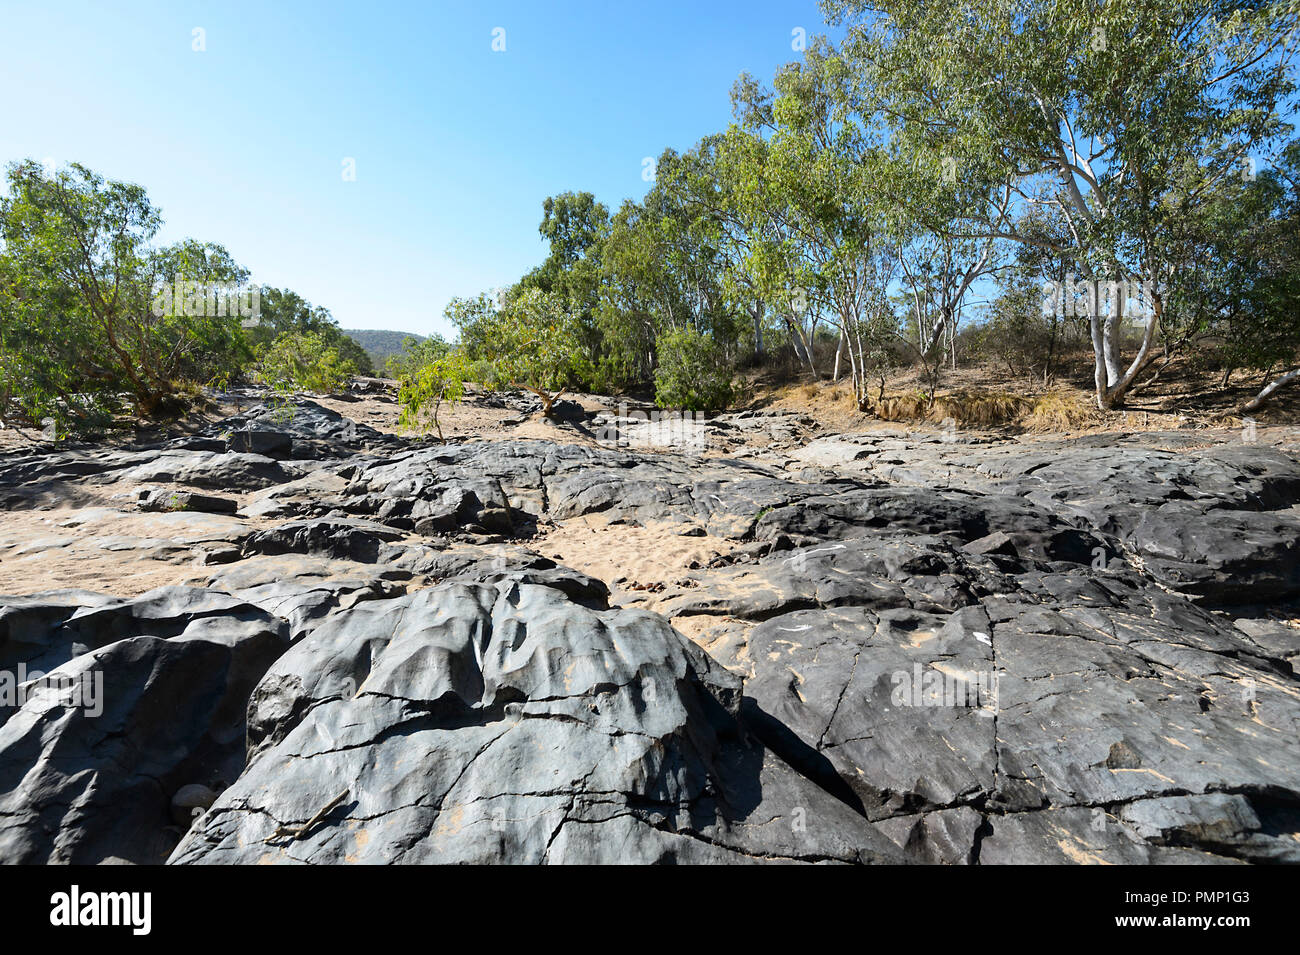 Dried riverbed or Creekbed in Emu Creek during the dry season, near Petford, North Queensland, QLD, Australia - Stock Image